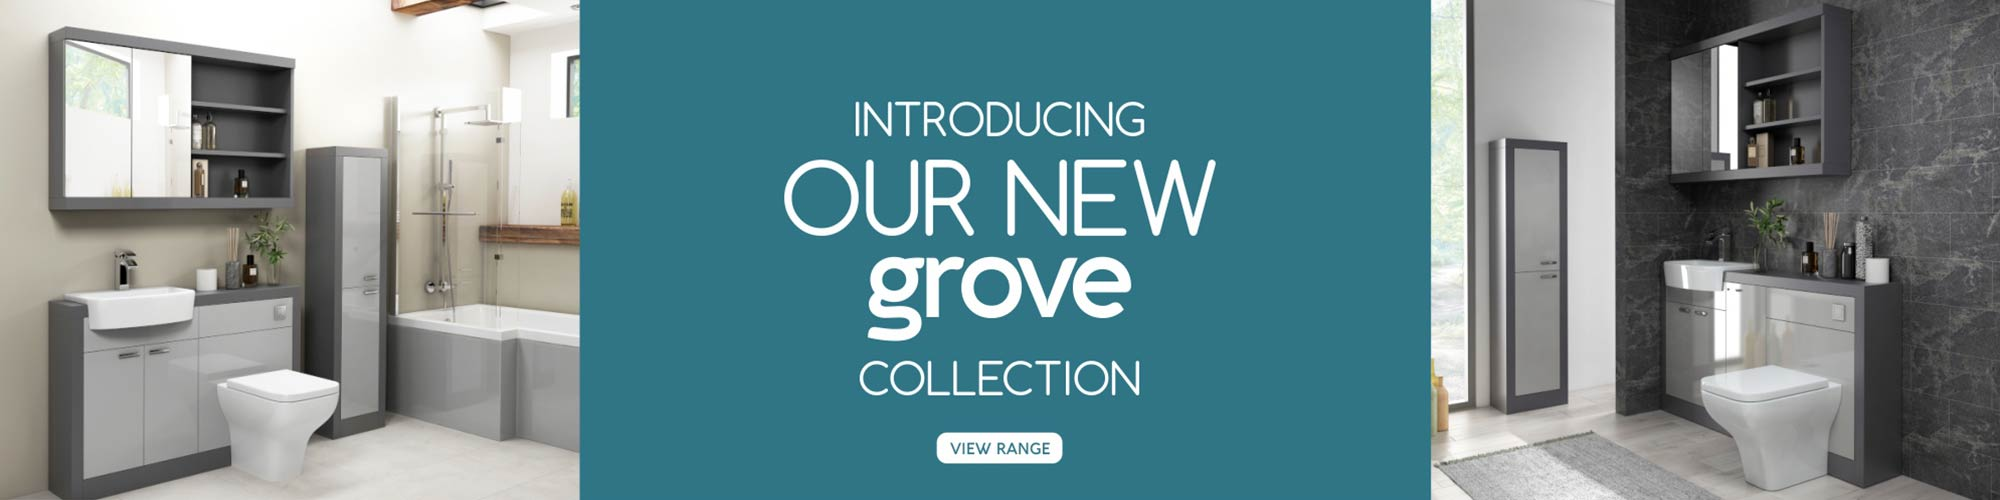 Introducing our new Grove collection - View range